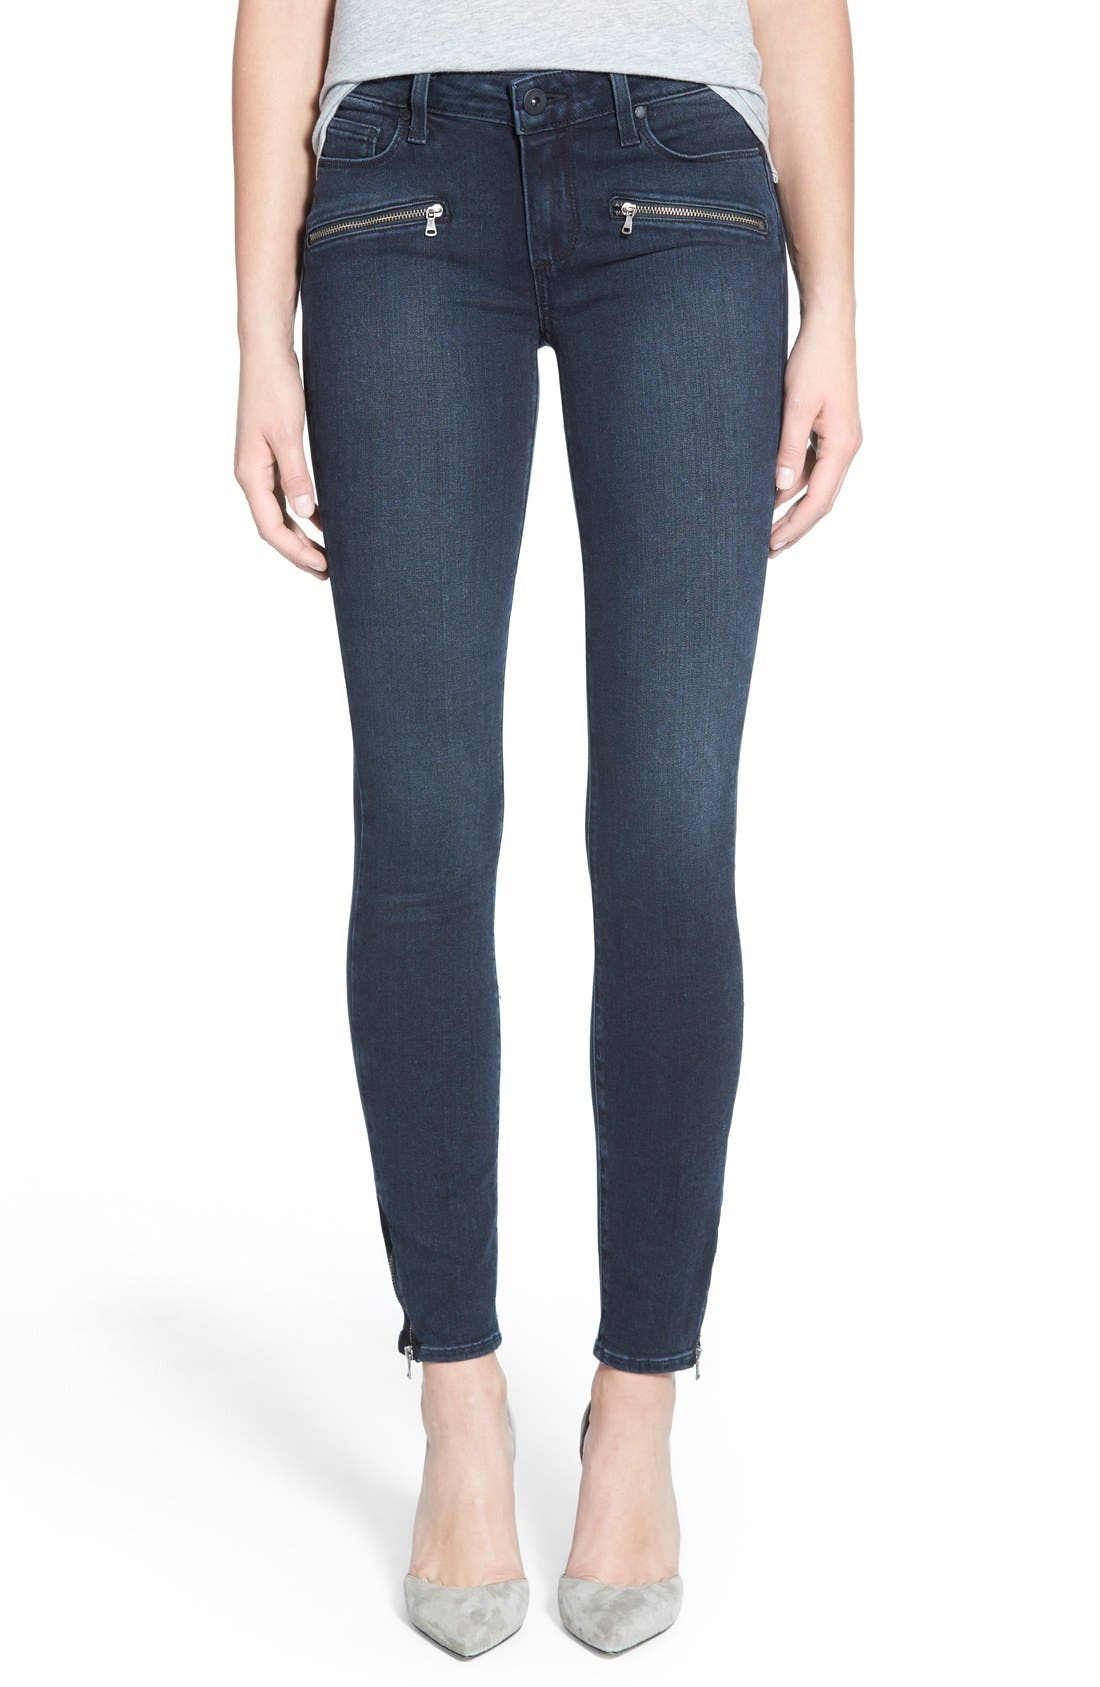 Denim 'Jill' Ultra Skinny Jeans,                             Main thumbnail 1, color,                             Reed No Whiskers